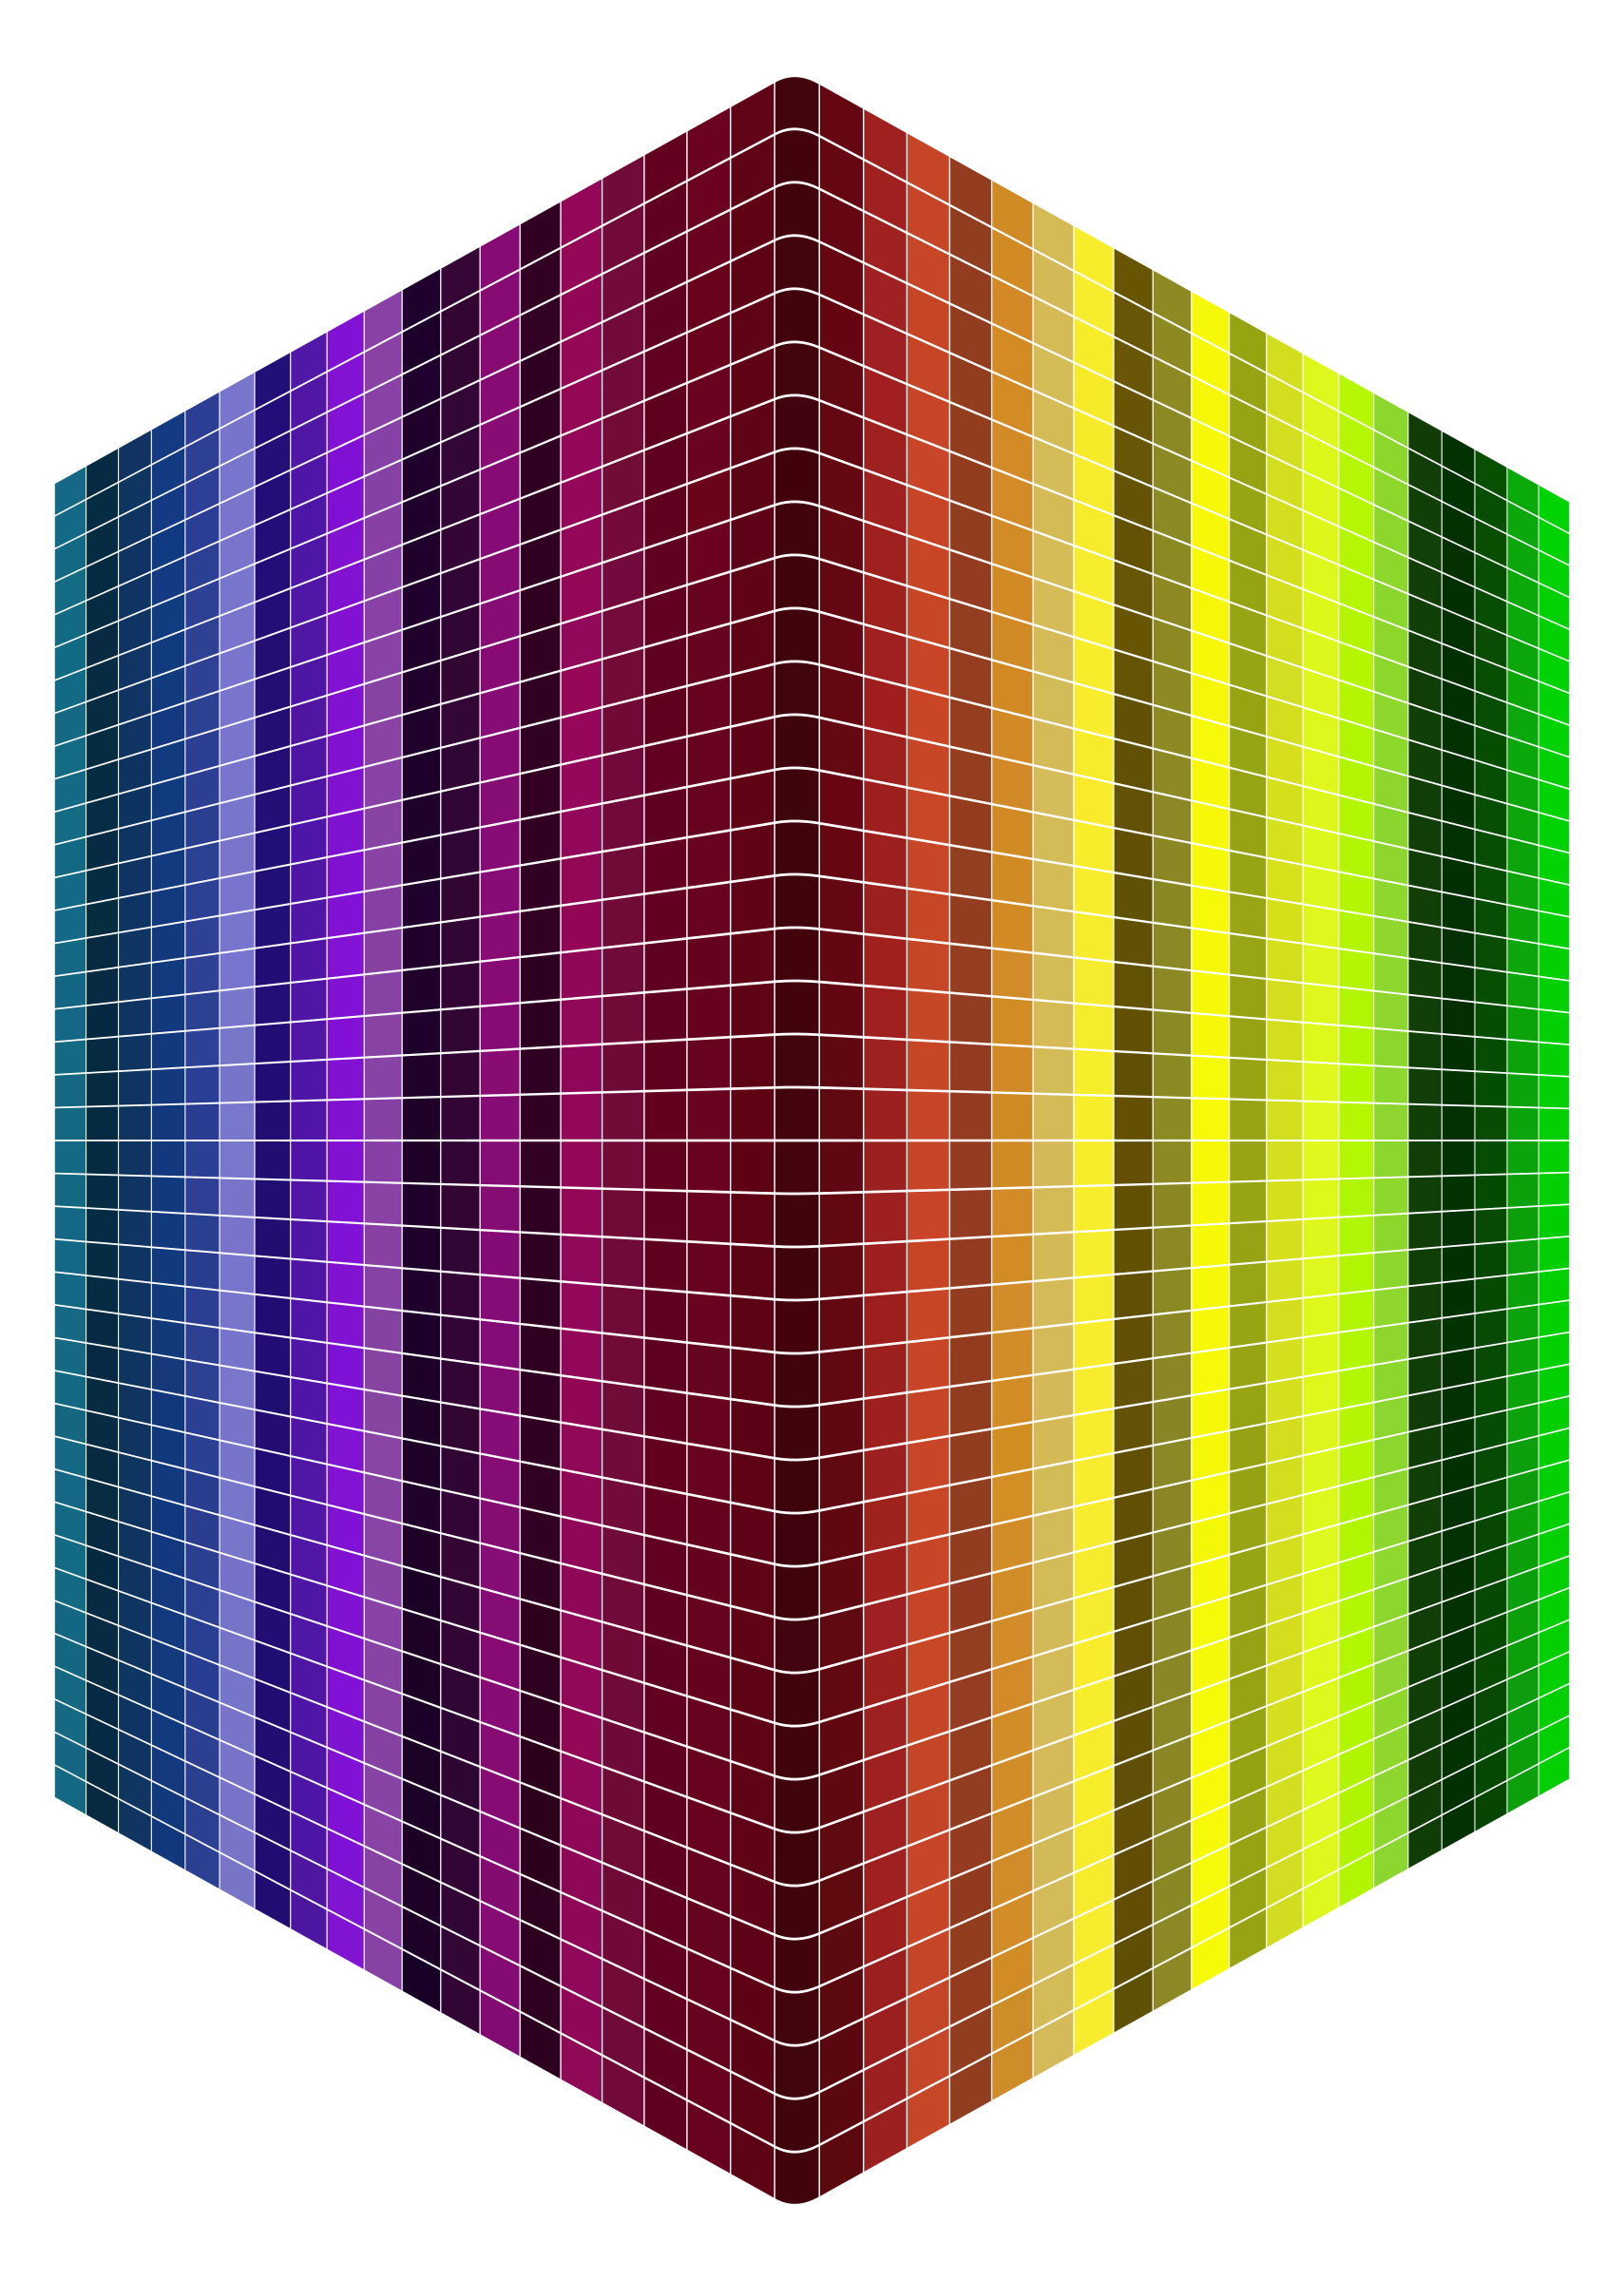 Cubic Spectrum by GDJ